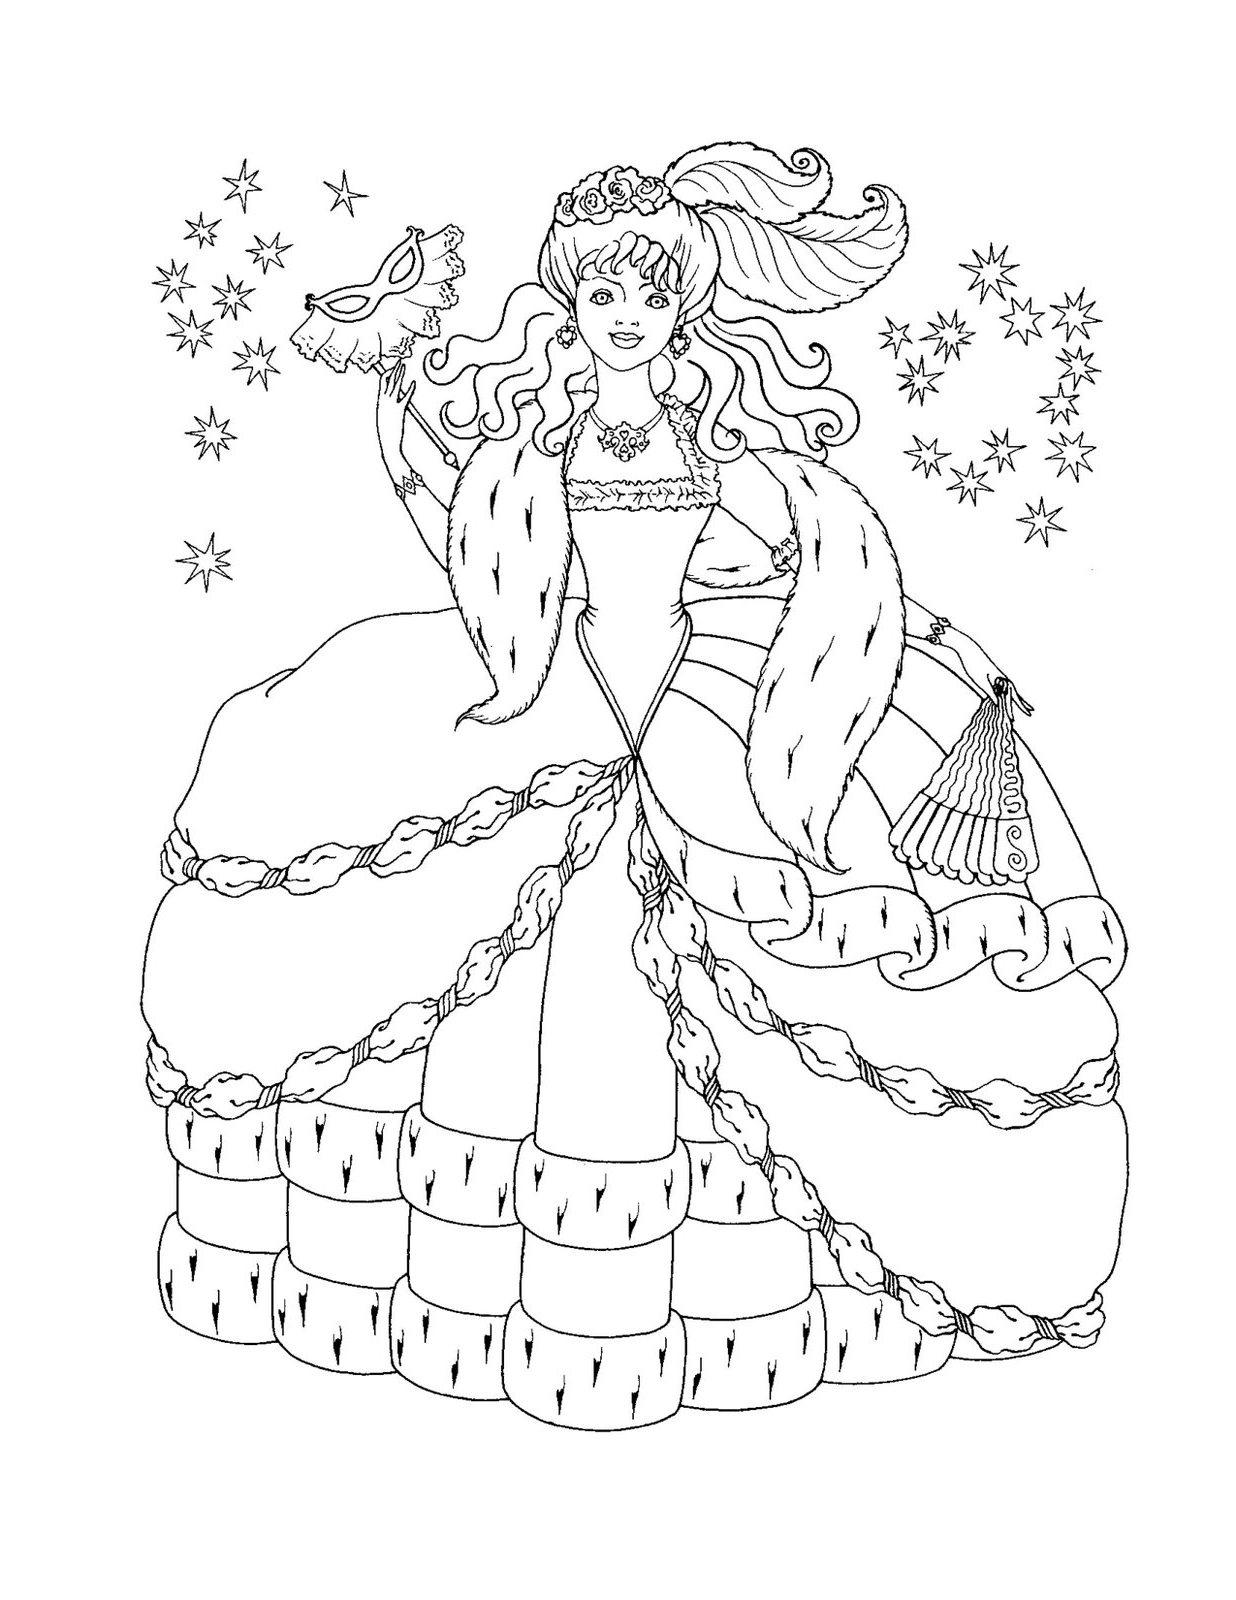 Free Printable Disney Princess Coloring Pages For Kids Princess Images To Color Free Coloring Pages